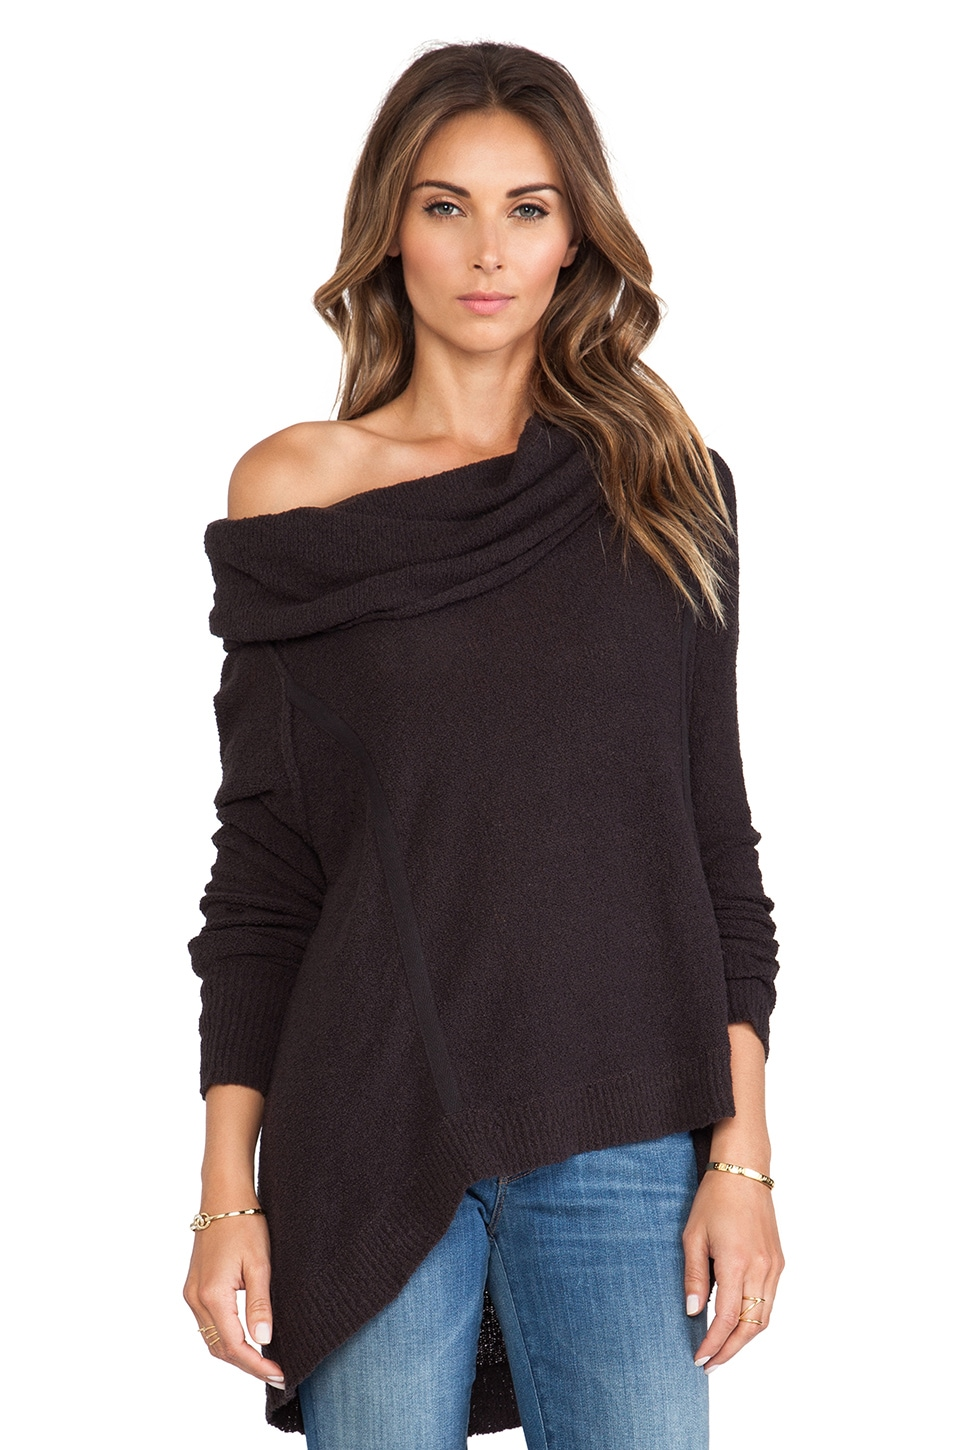 Free People Pebble Cowl Top in Black